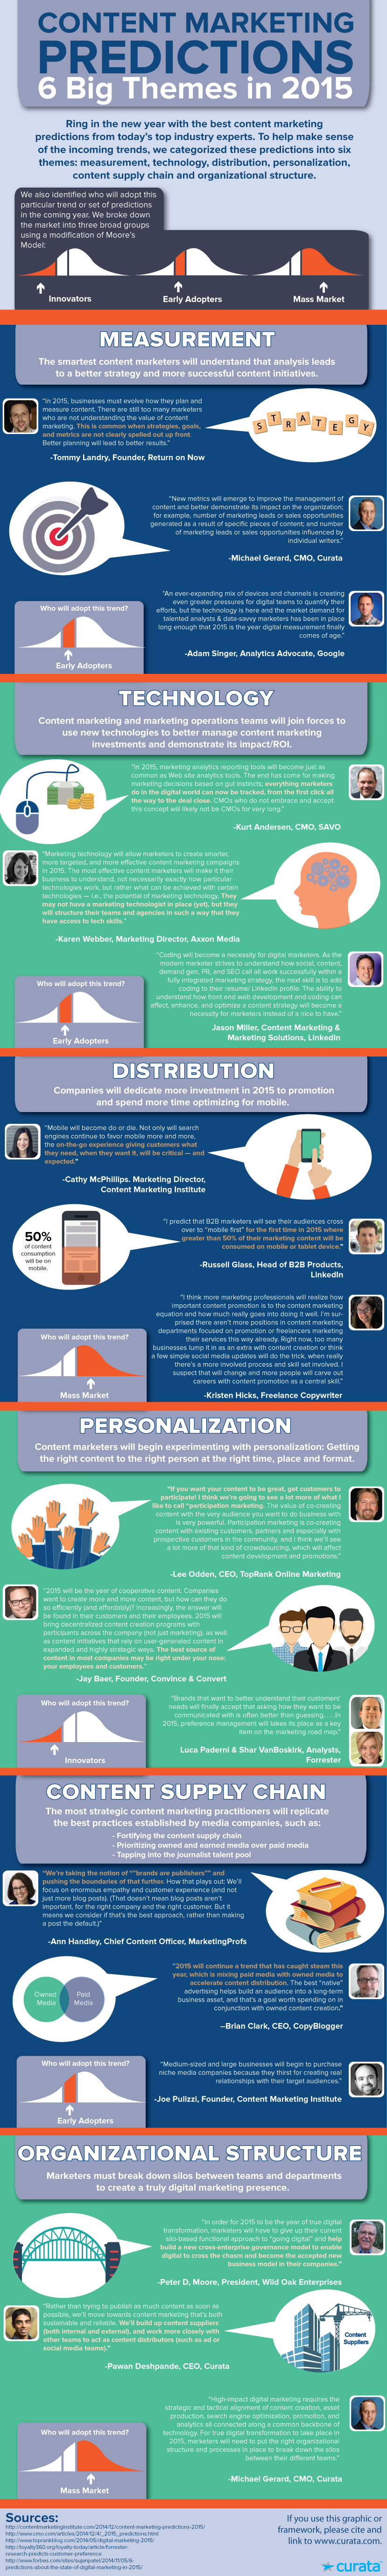 infographic, content marketing, technology, future, distribution, promotion